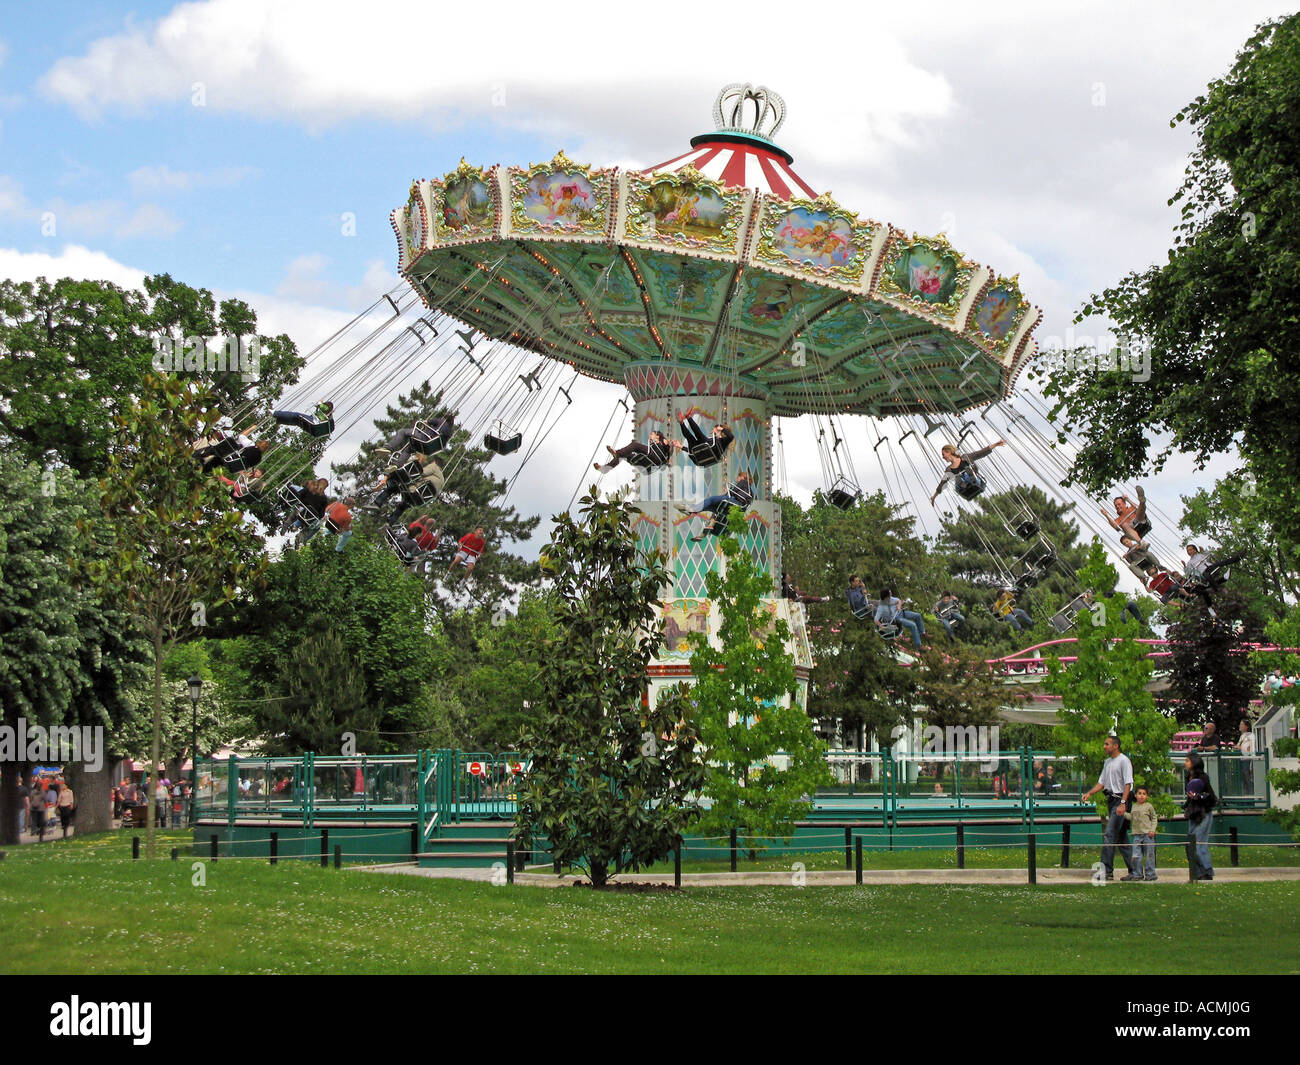 Roundabout in le jardin d acclimatation paris france stock for Bois de boulogne jardin d acclimatation